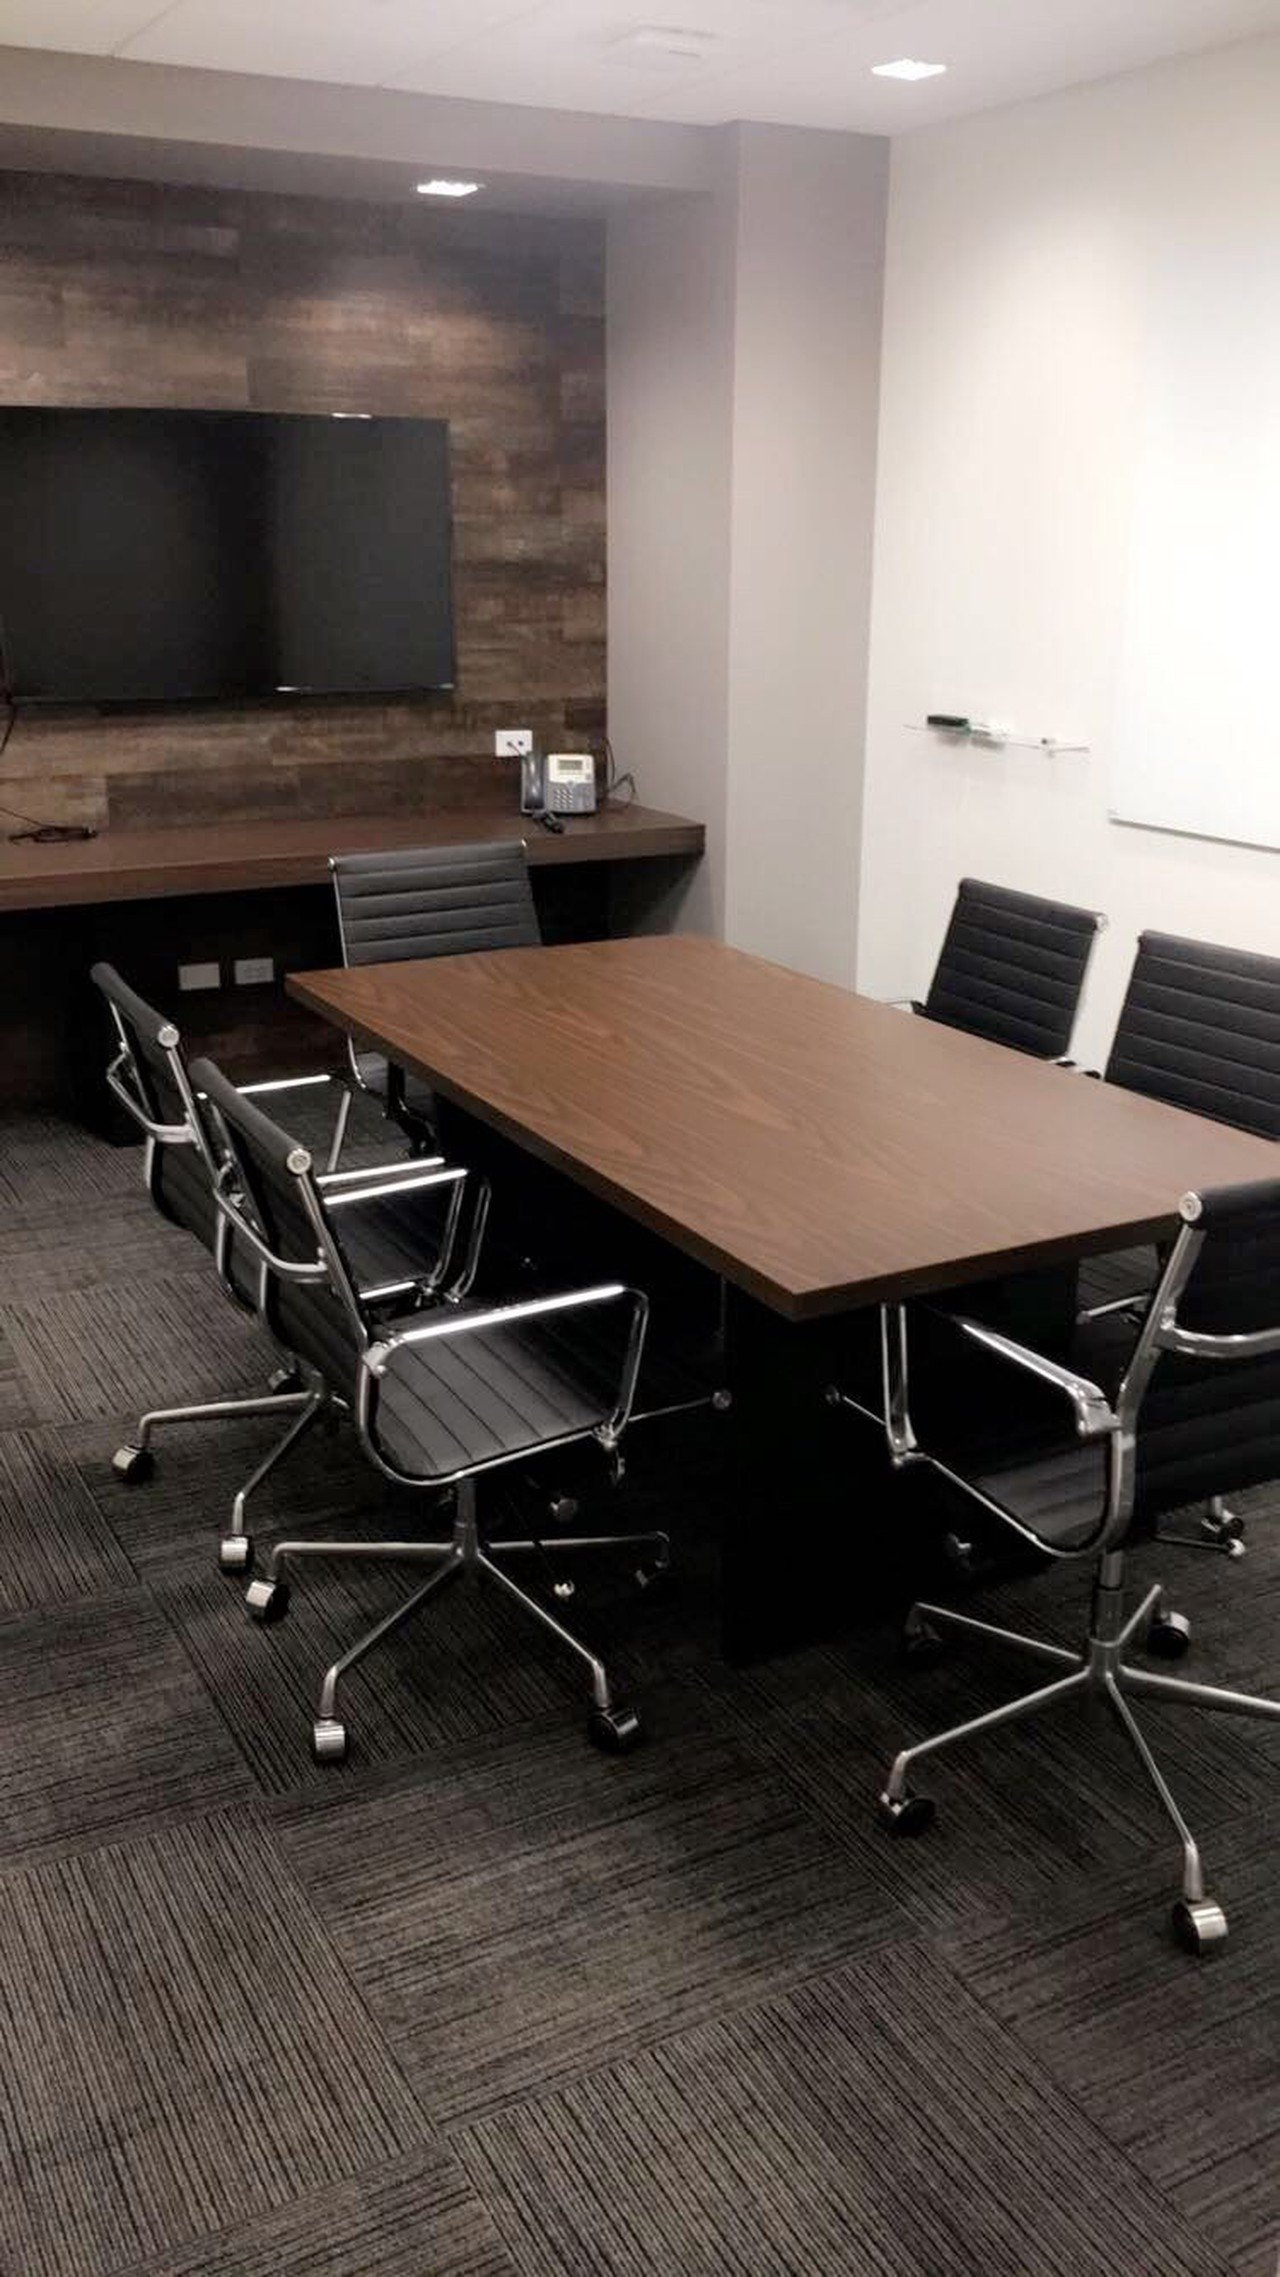 NYC training rooms Meetingraum 6 Person Meeting Space at 54th and Third Avenue image 0